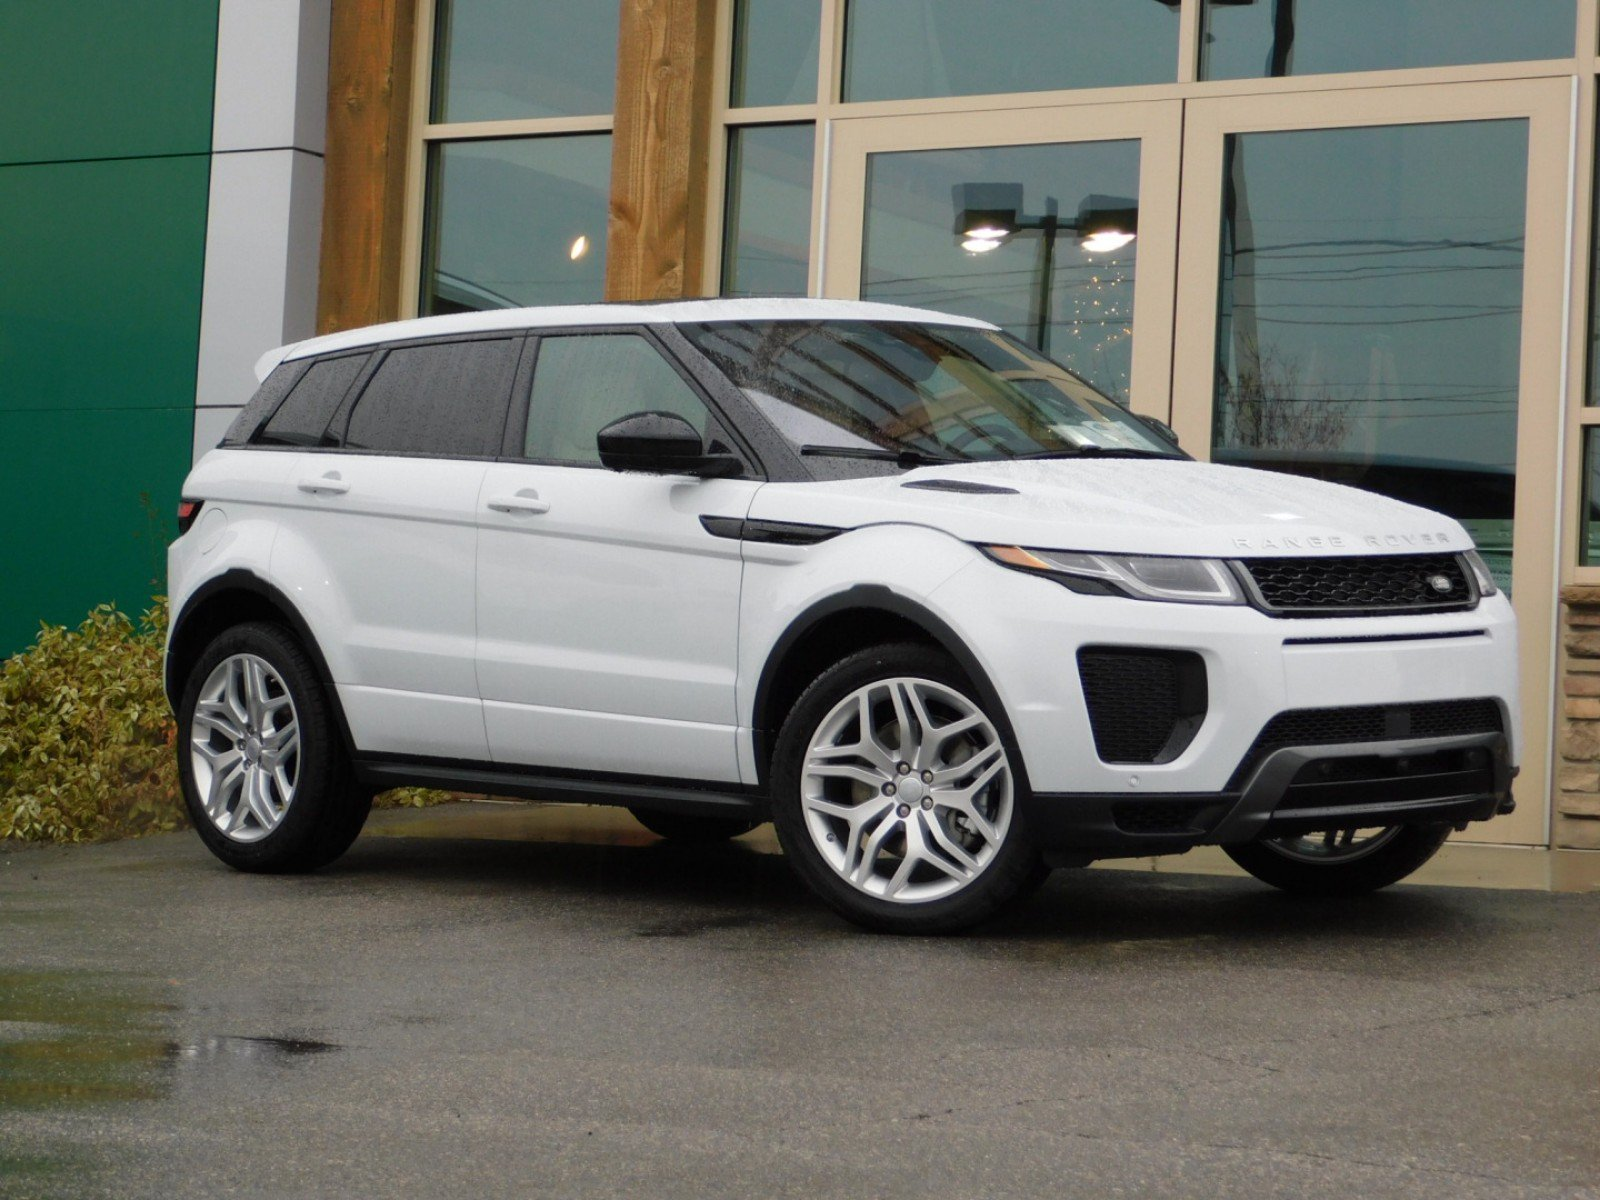 Range Rover Evoque Hse >> Certified Pre Owned 2019 Land Rover Range Rover Evoque Hse Dynamic With Navigation 4wd